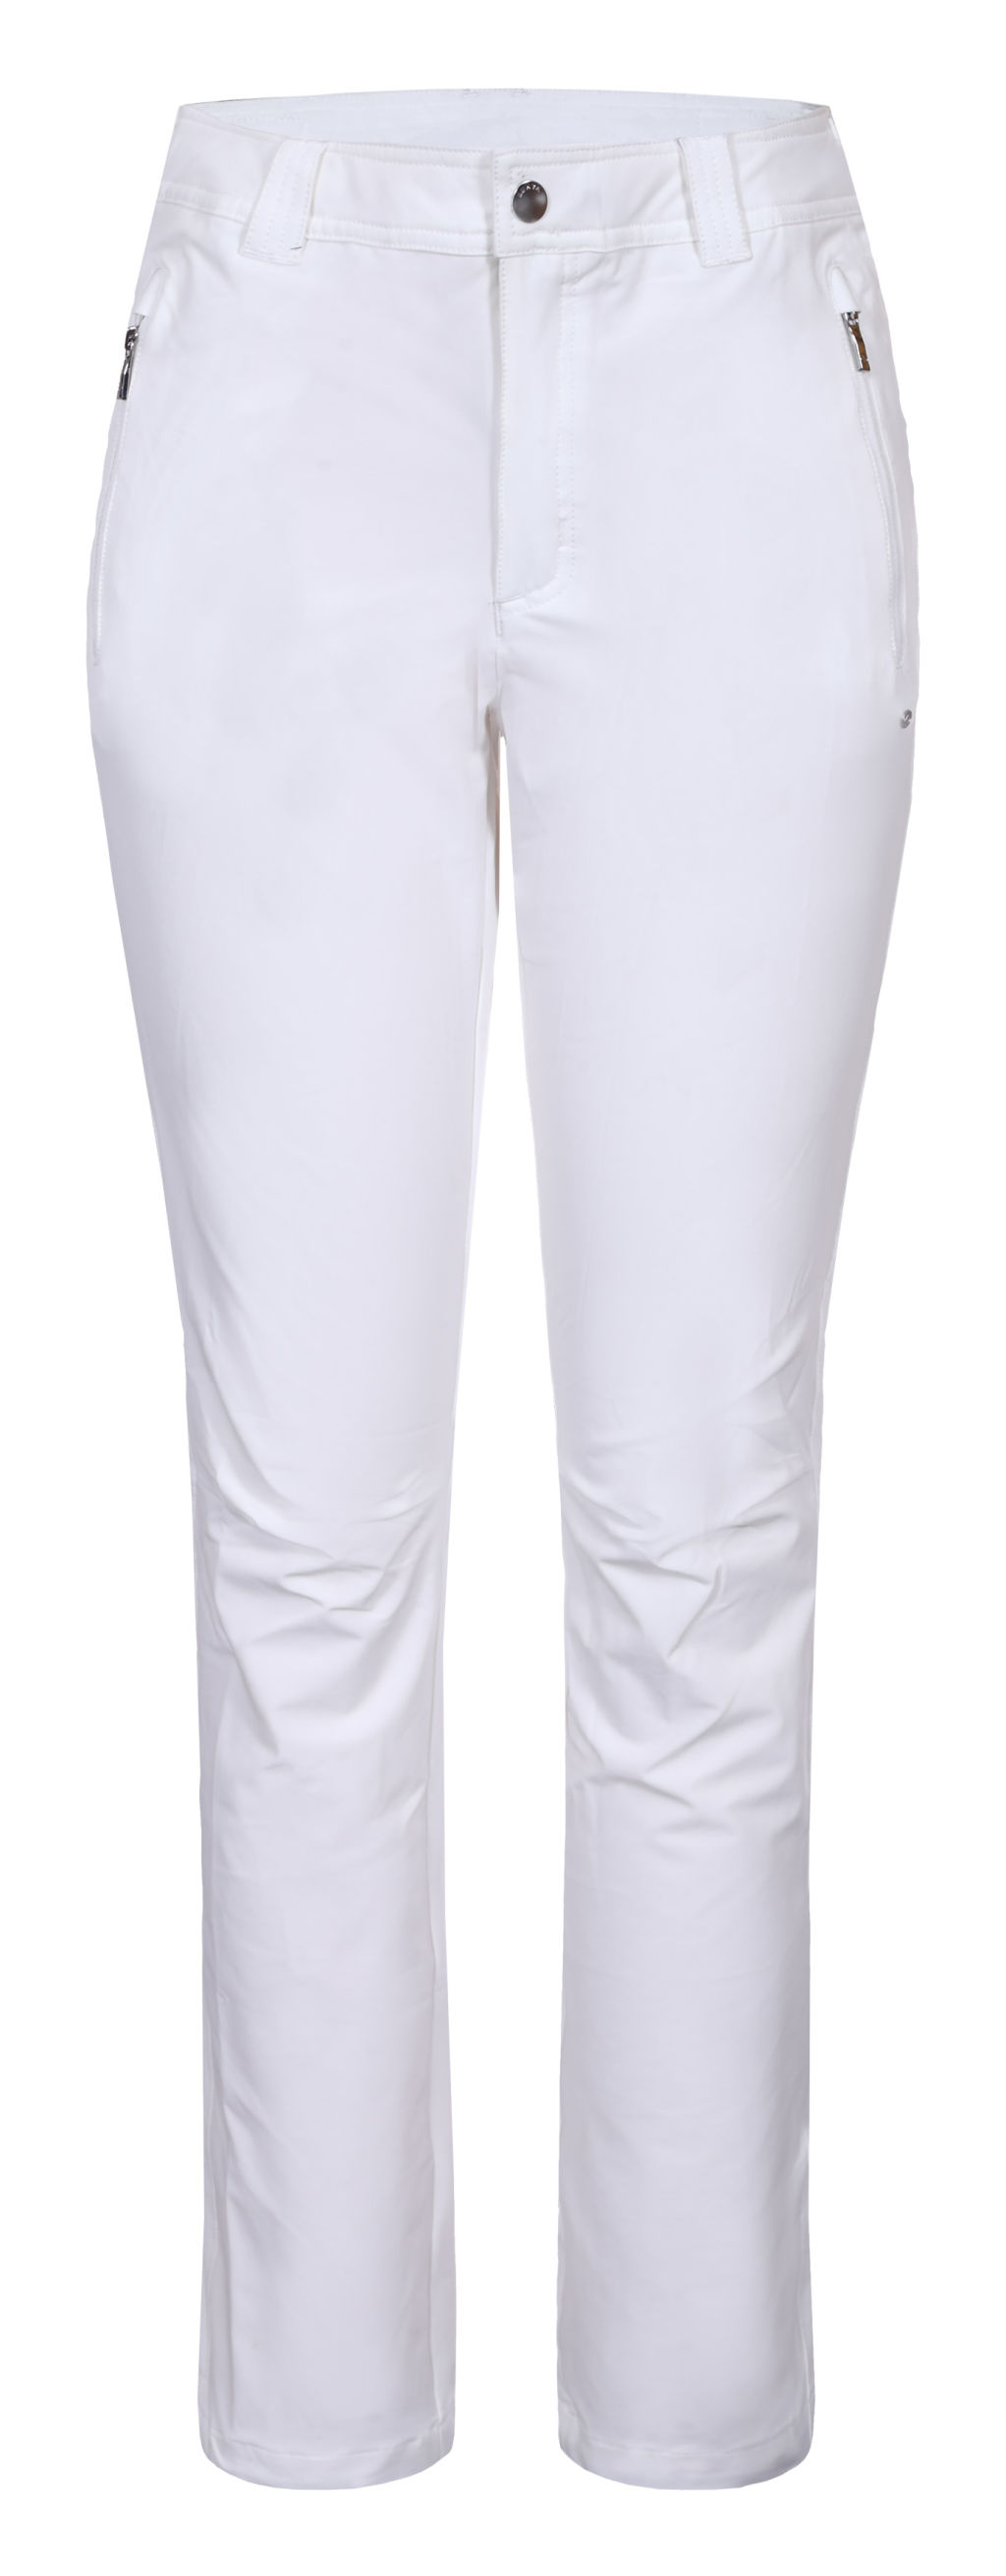 Luhta Roselia Pant W - Naisten stretch-housut - Intersport 029ea57580